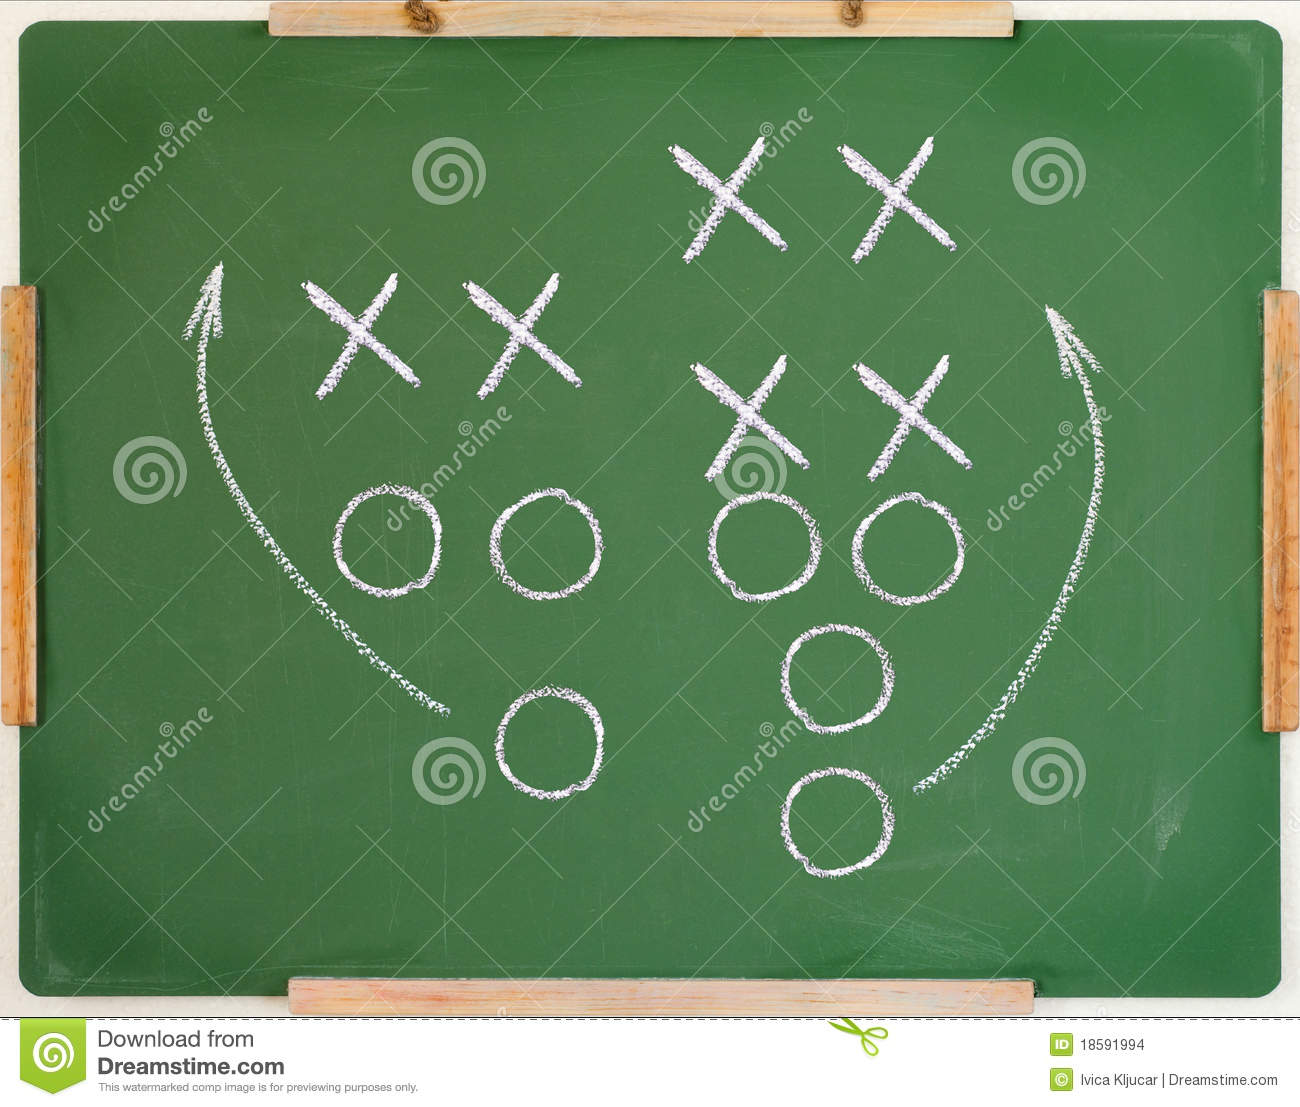 football play diagram stock images image 18591994 : football play diagram - findchart.co